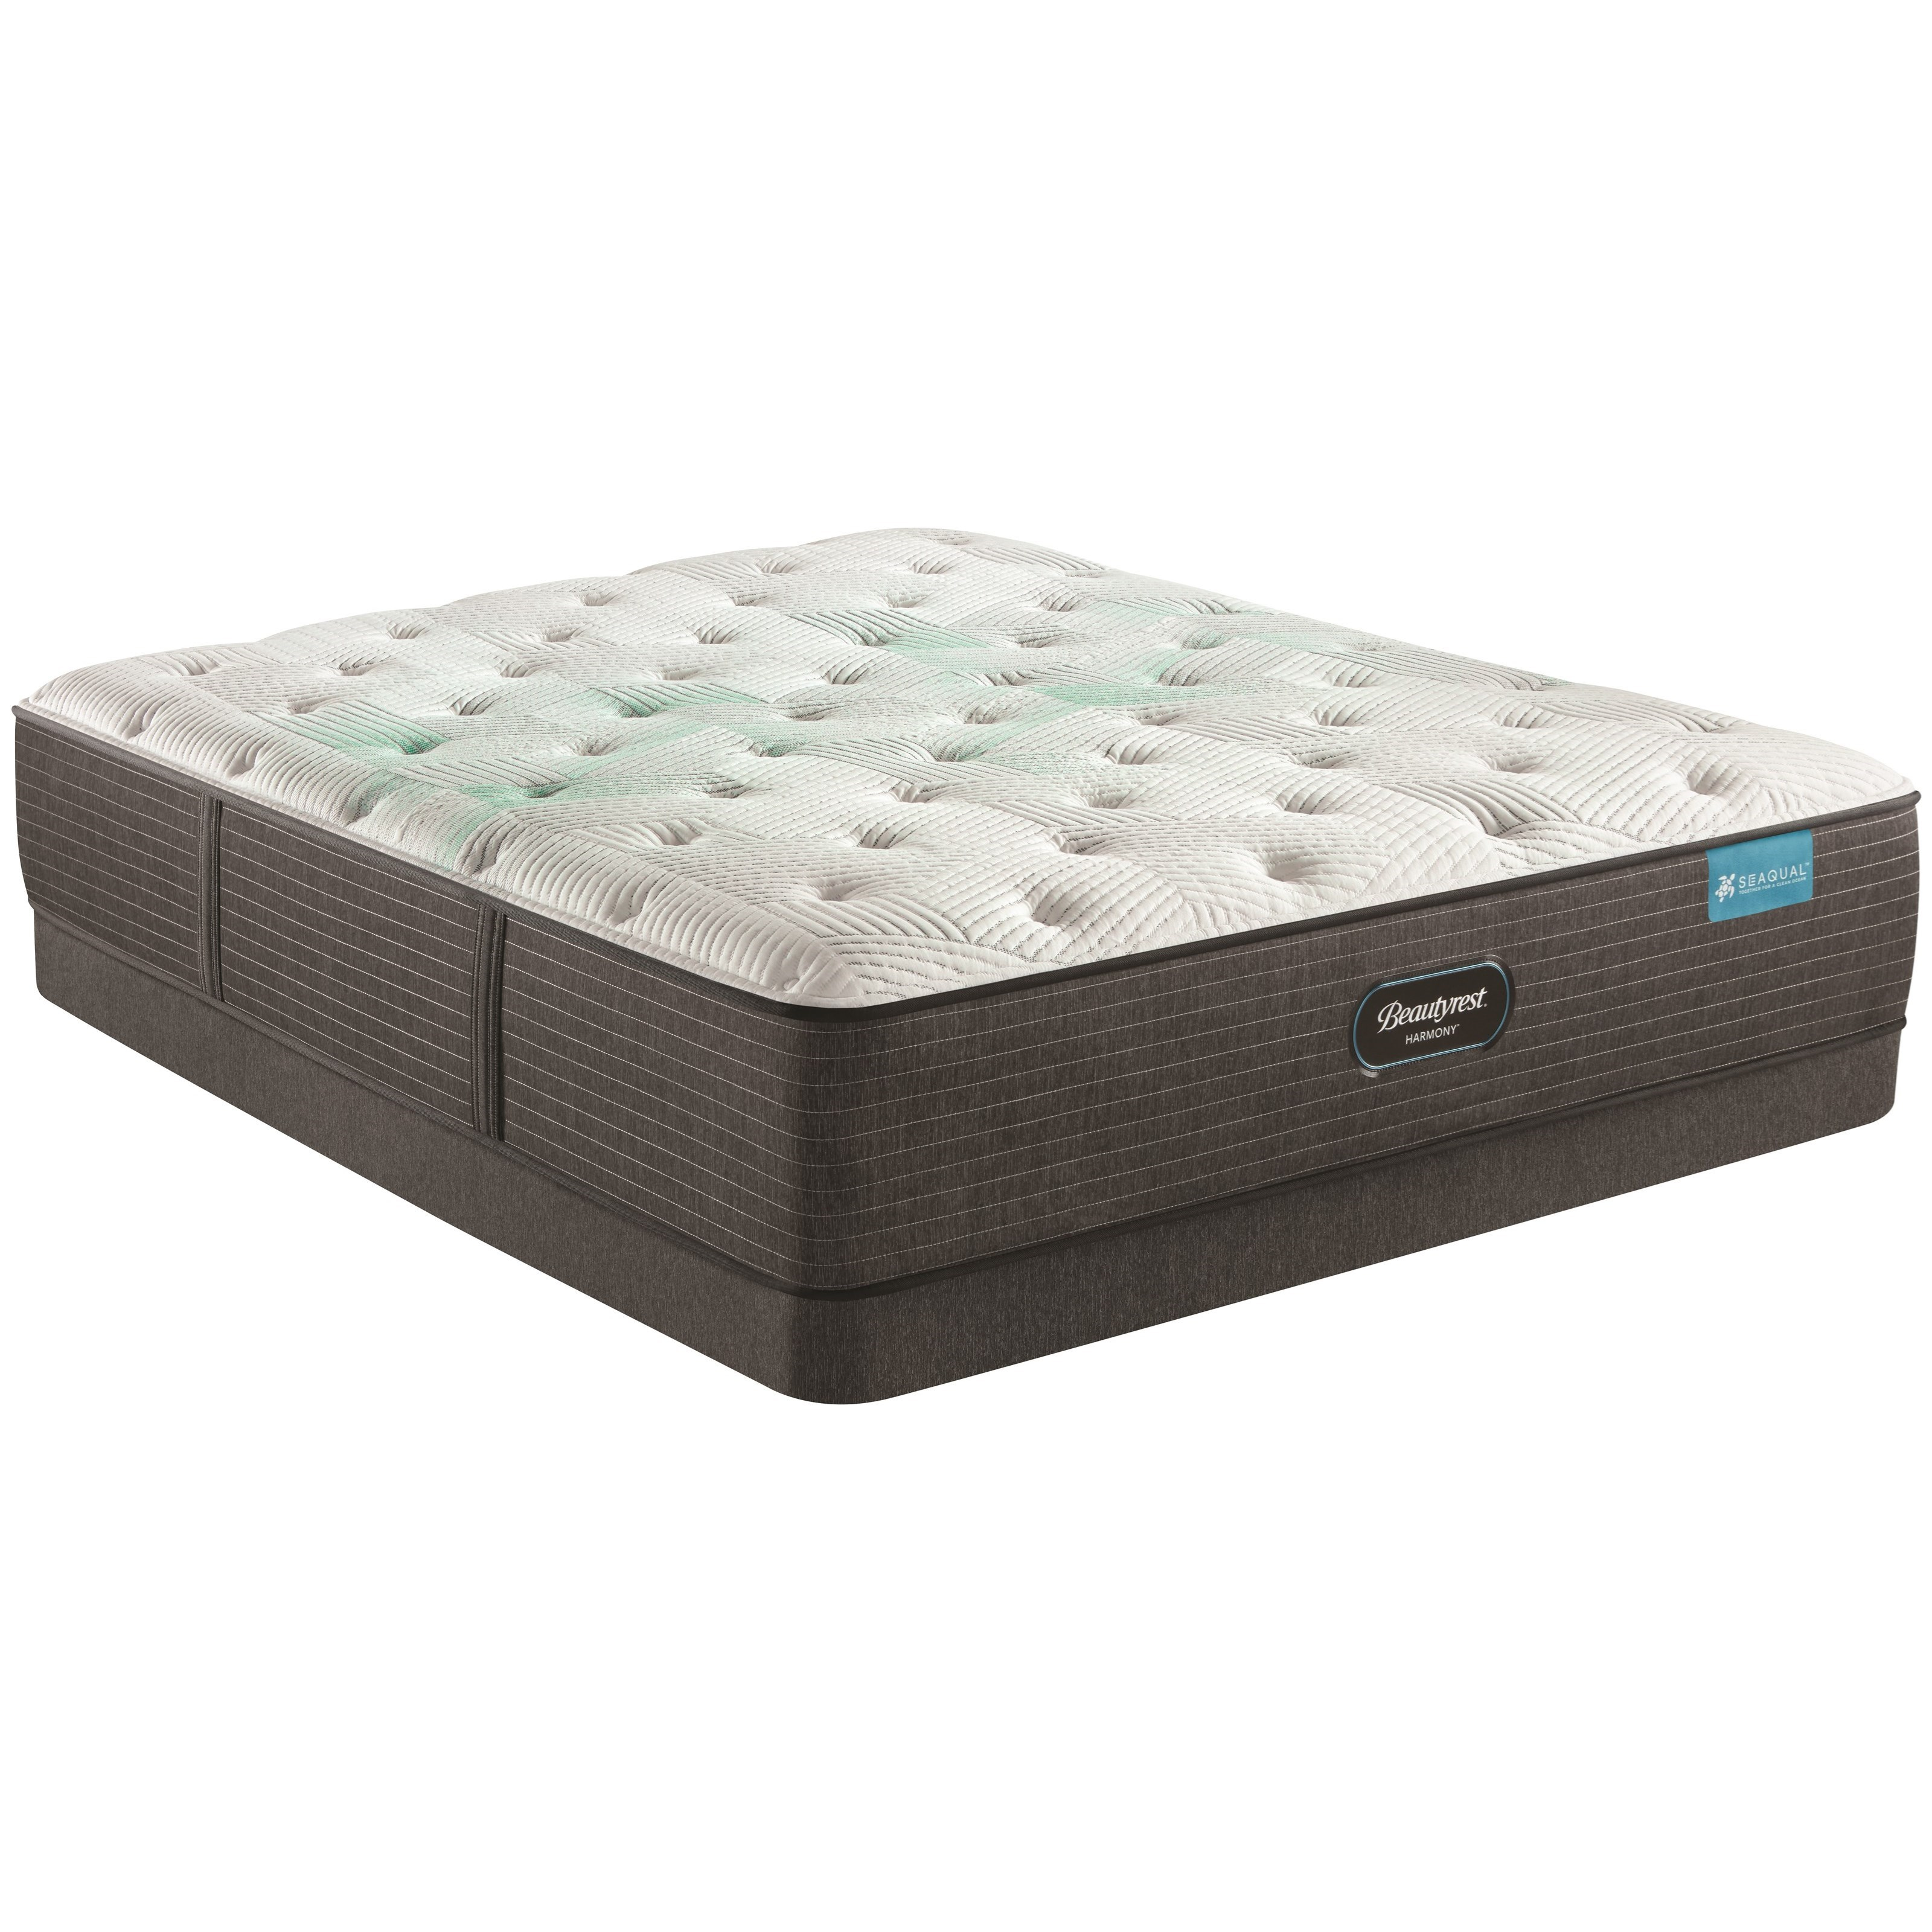 """Harmony Hadley Series Queen 13 1/2"""" Medium Low Profile Set by Beautyrest at Rotmans"""